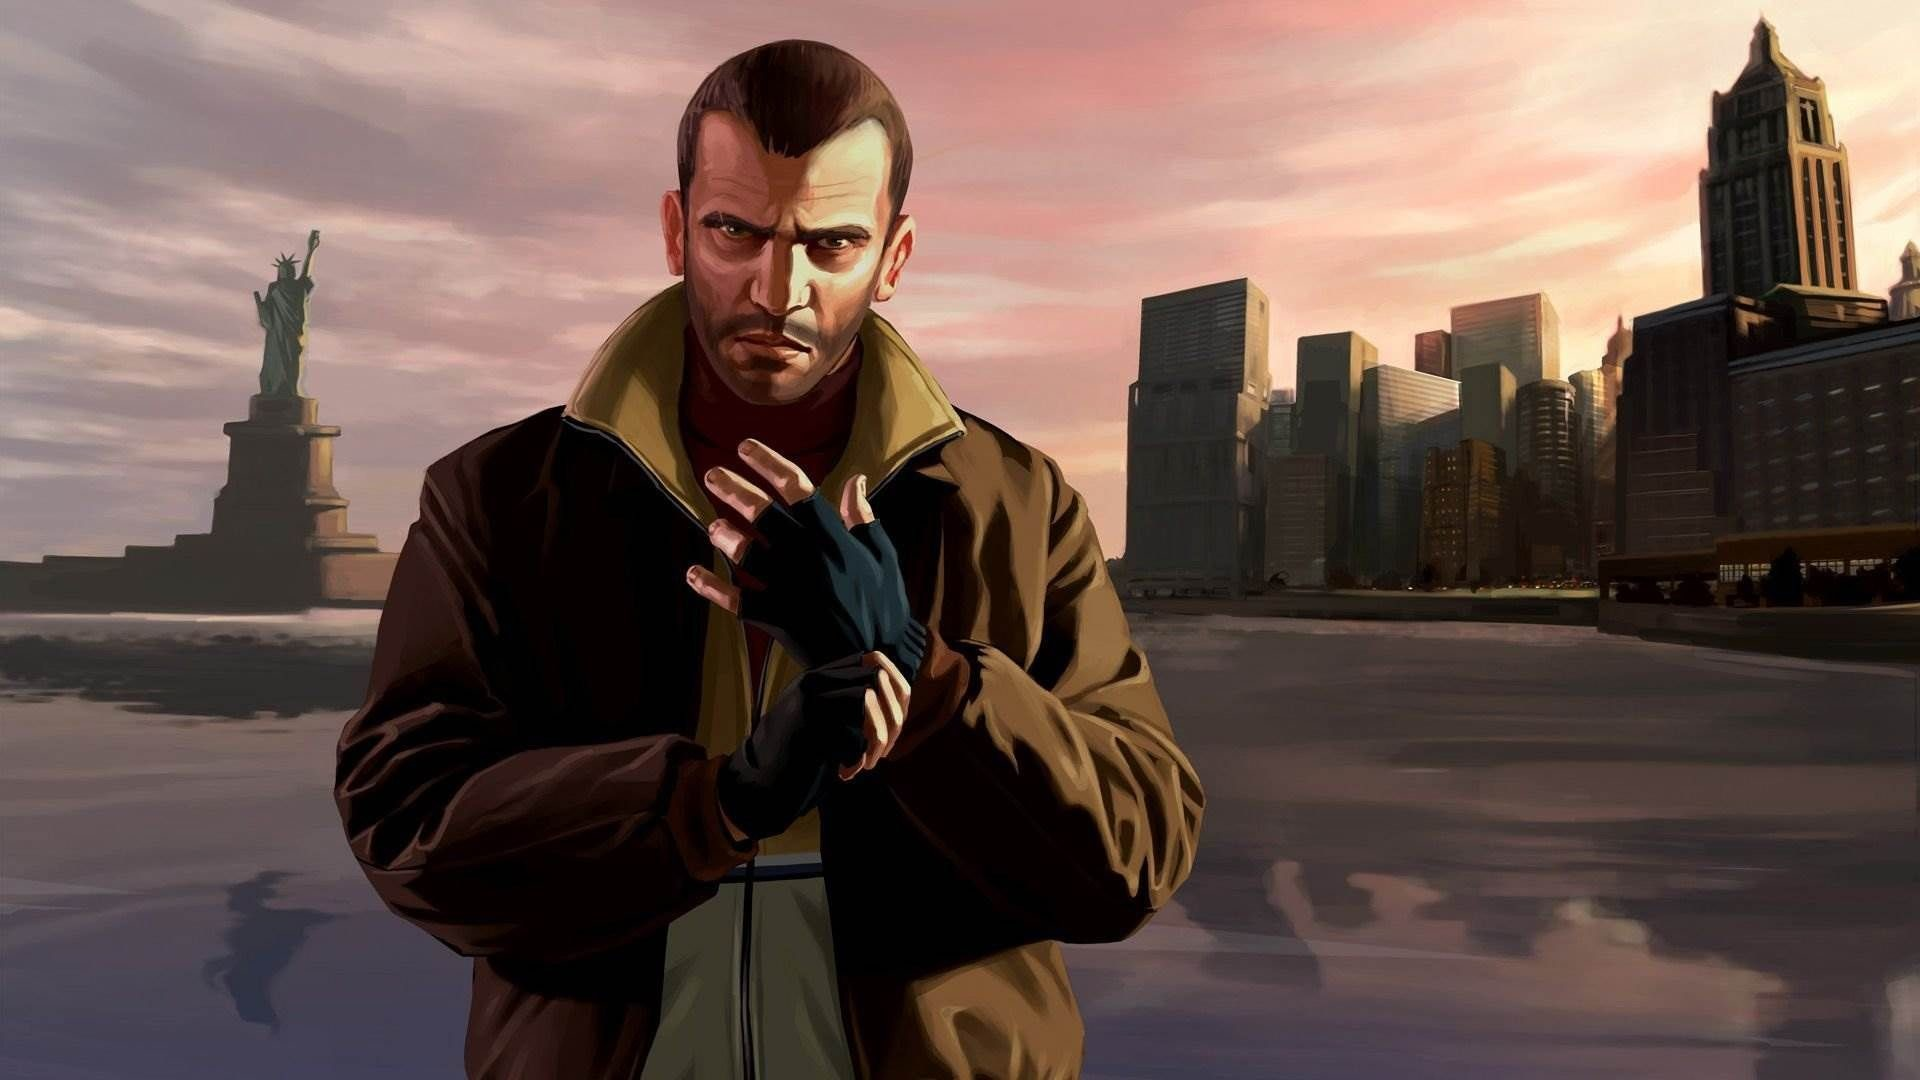 GTA 6 Release Date, Locations, Main Character Gangster and Cop could be the Playable Characters